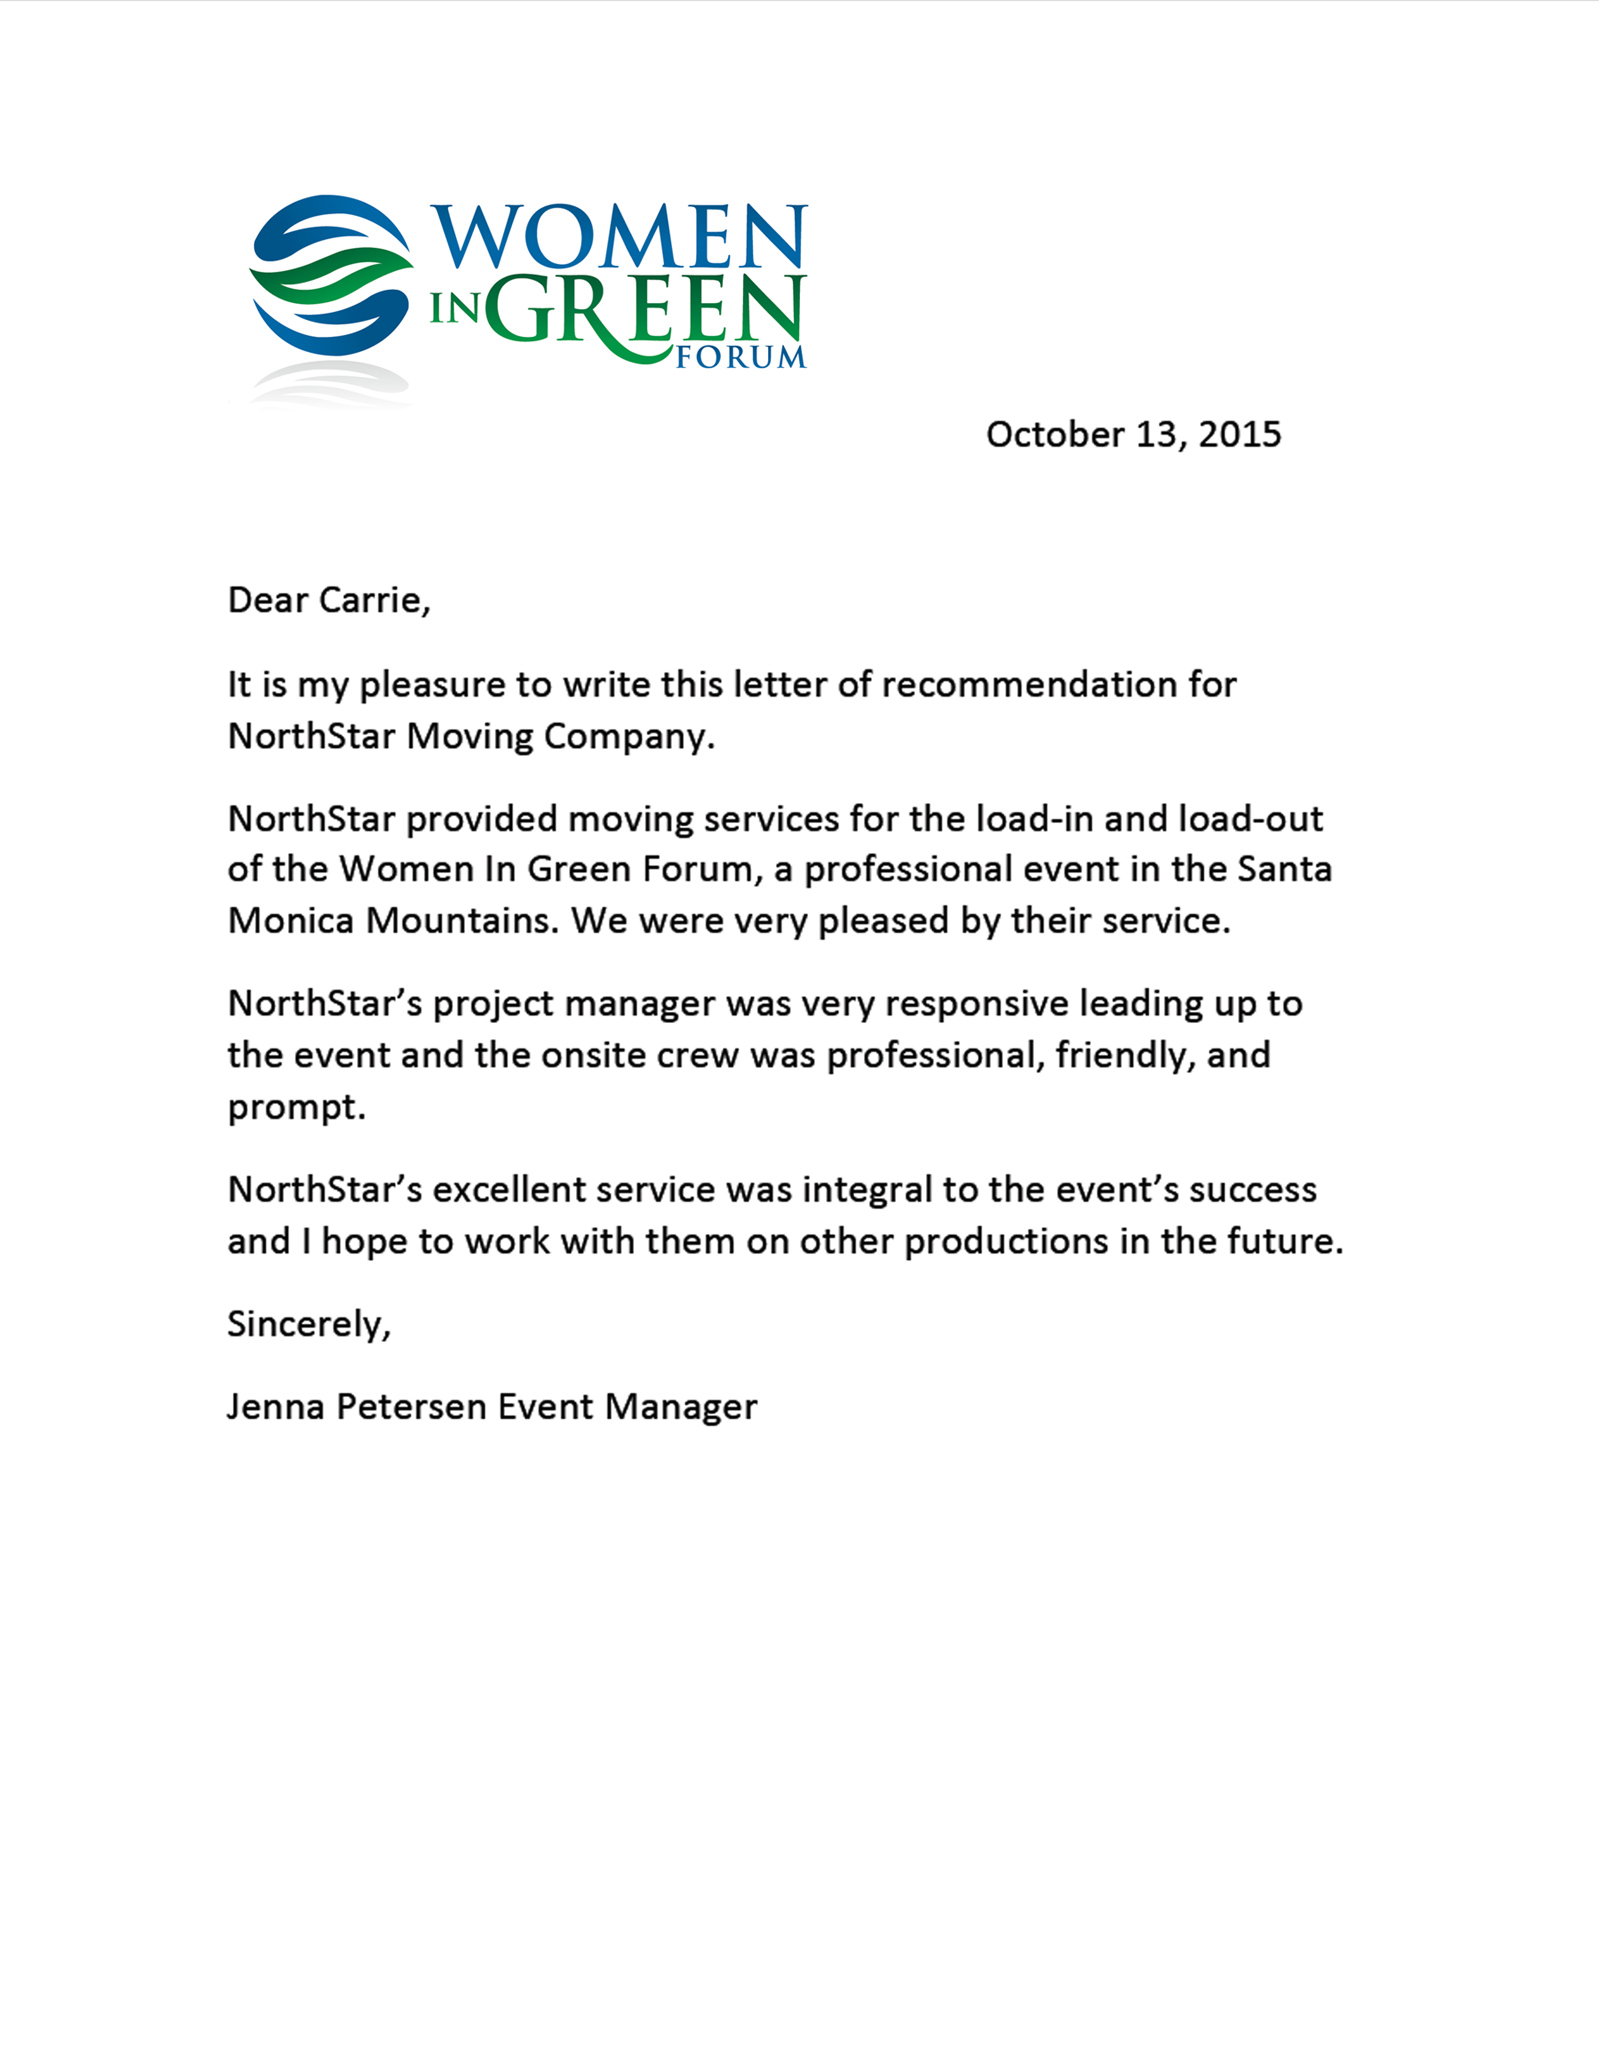 Women in Green Forum Recommendation Letter to NorthStar Moving